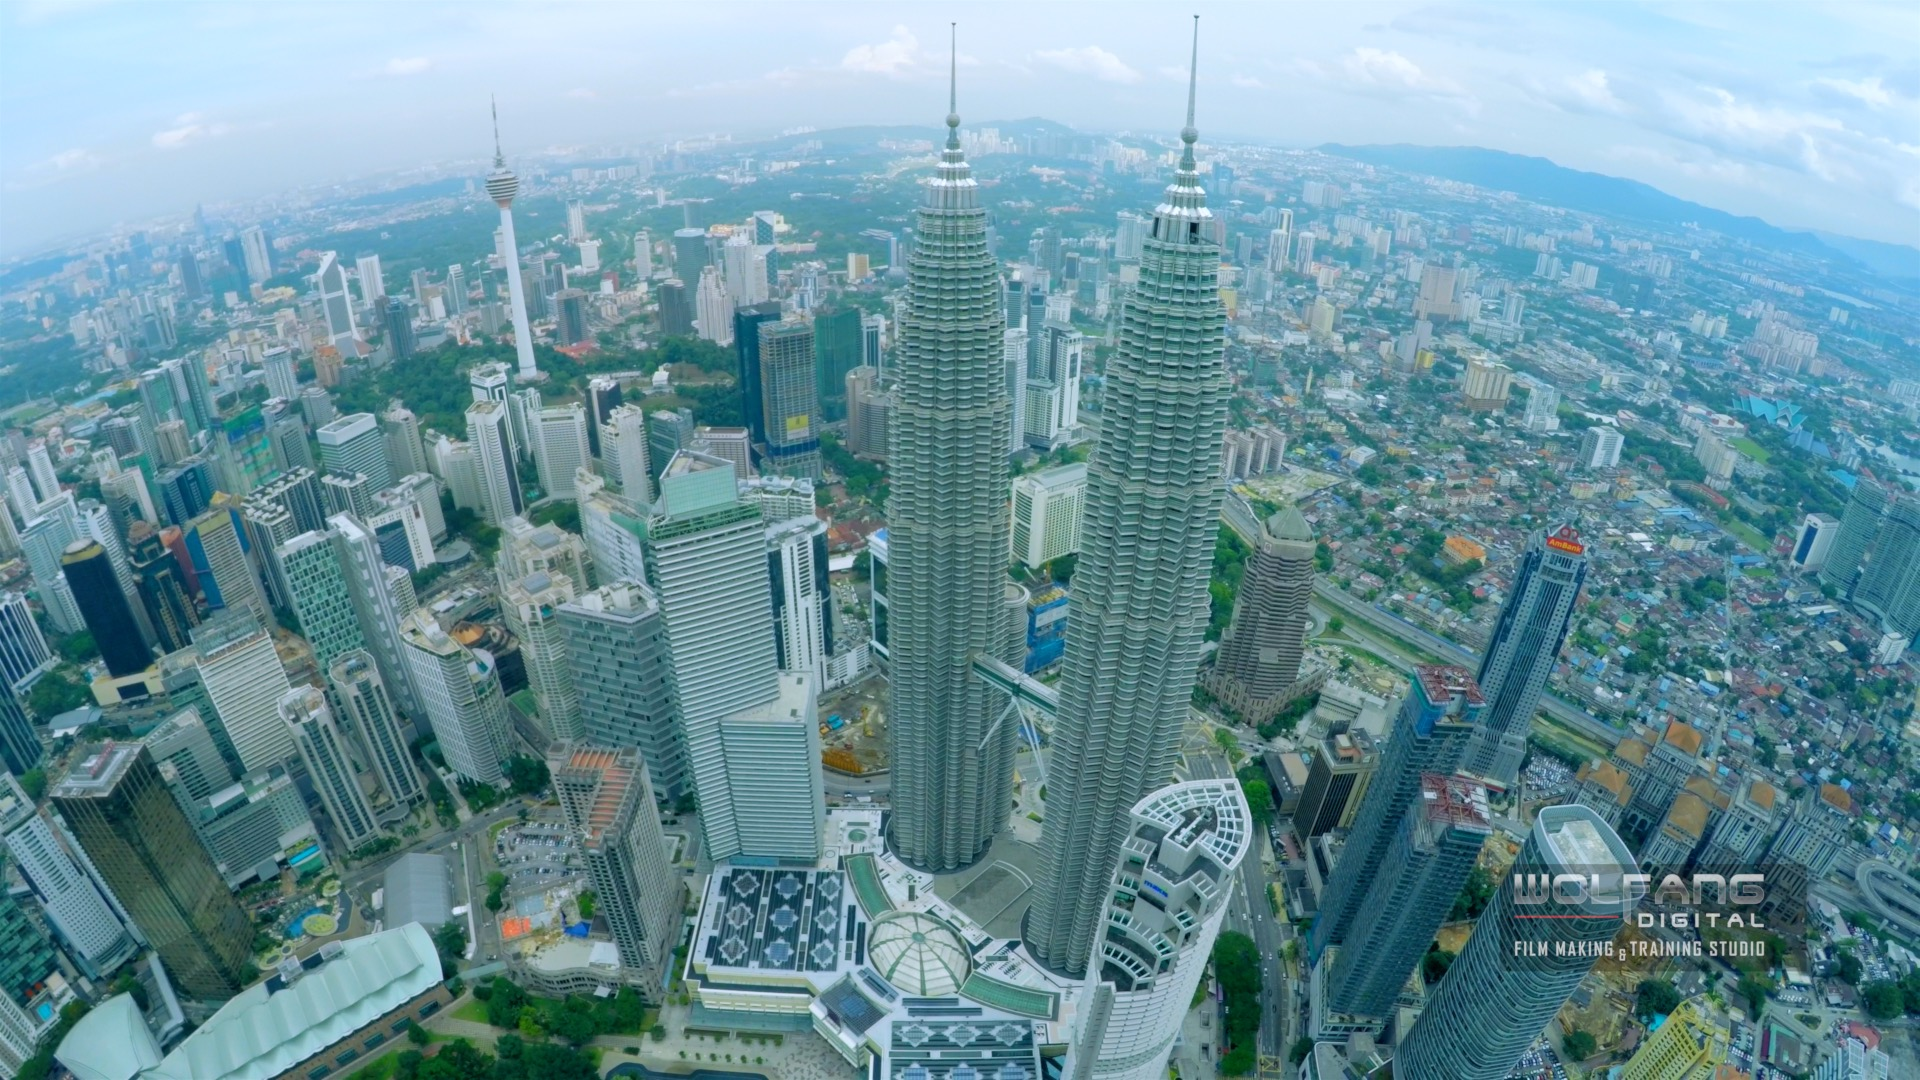 Aerial view of Petronas Twin Towers by WolFang Digital